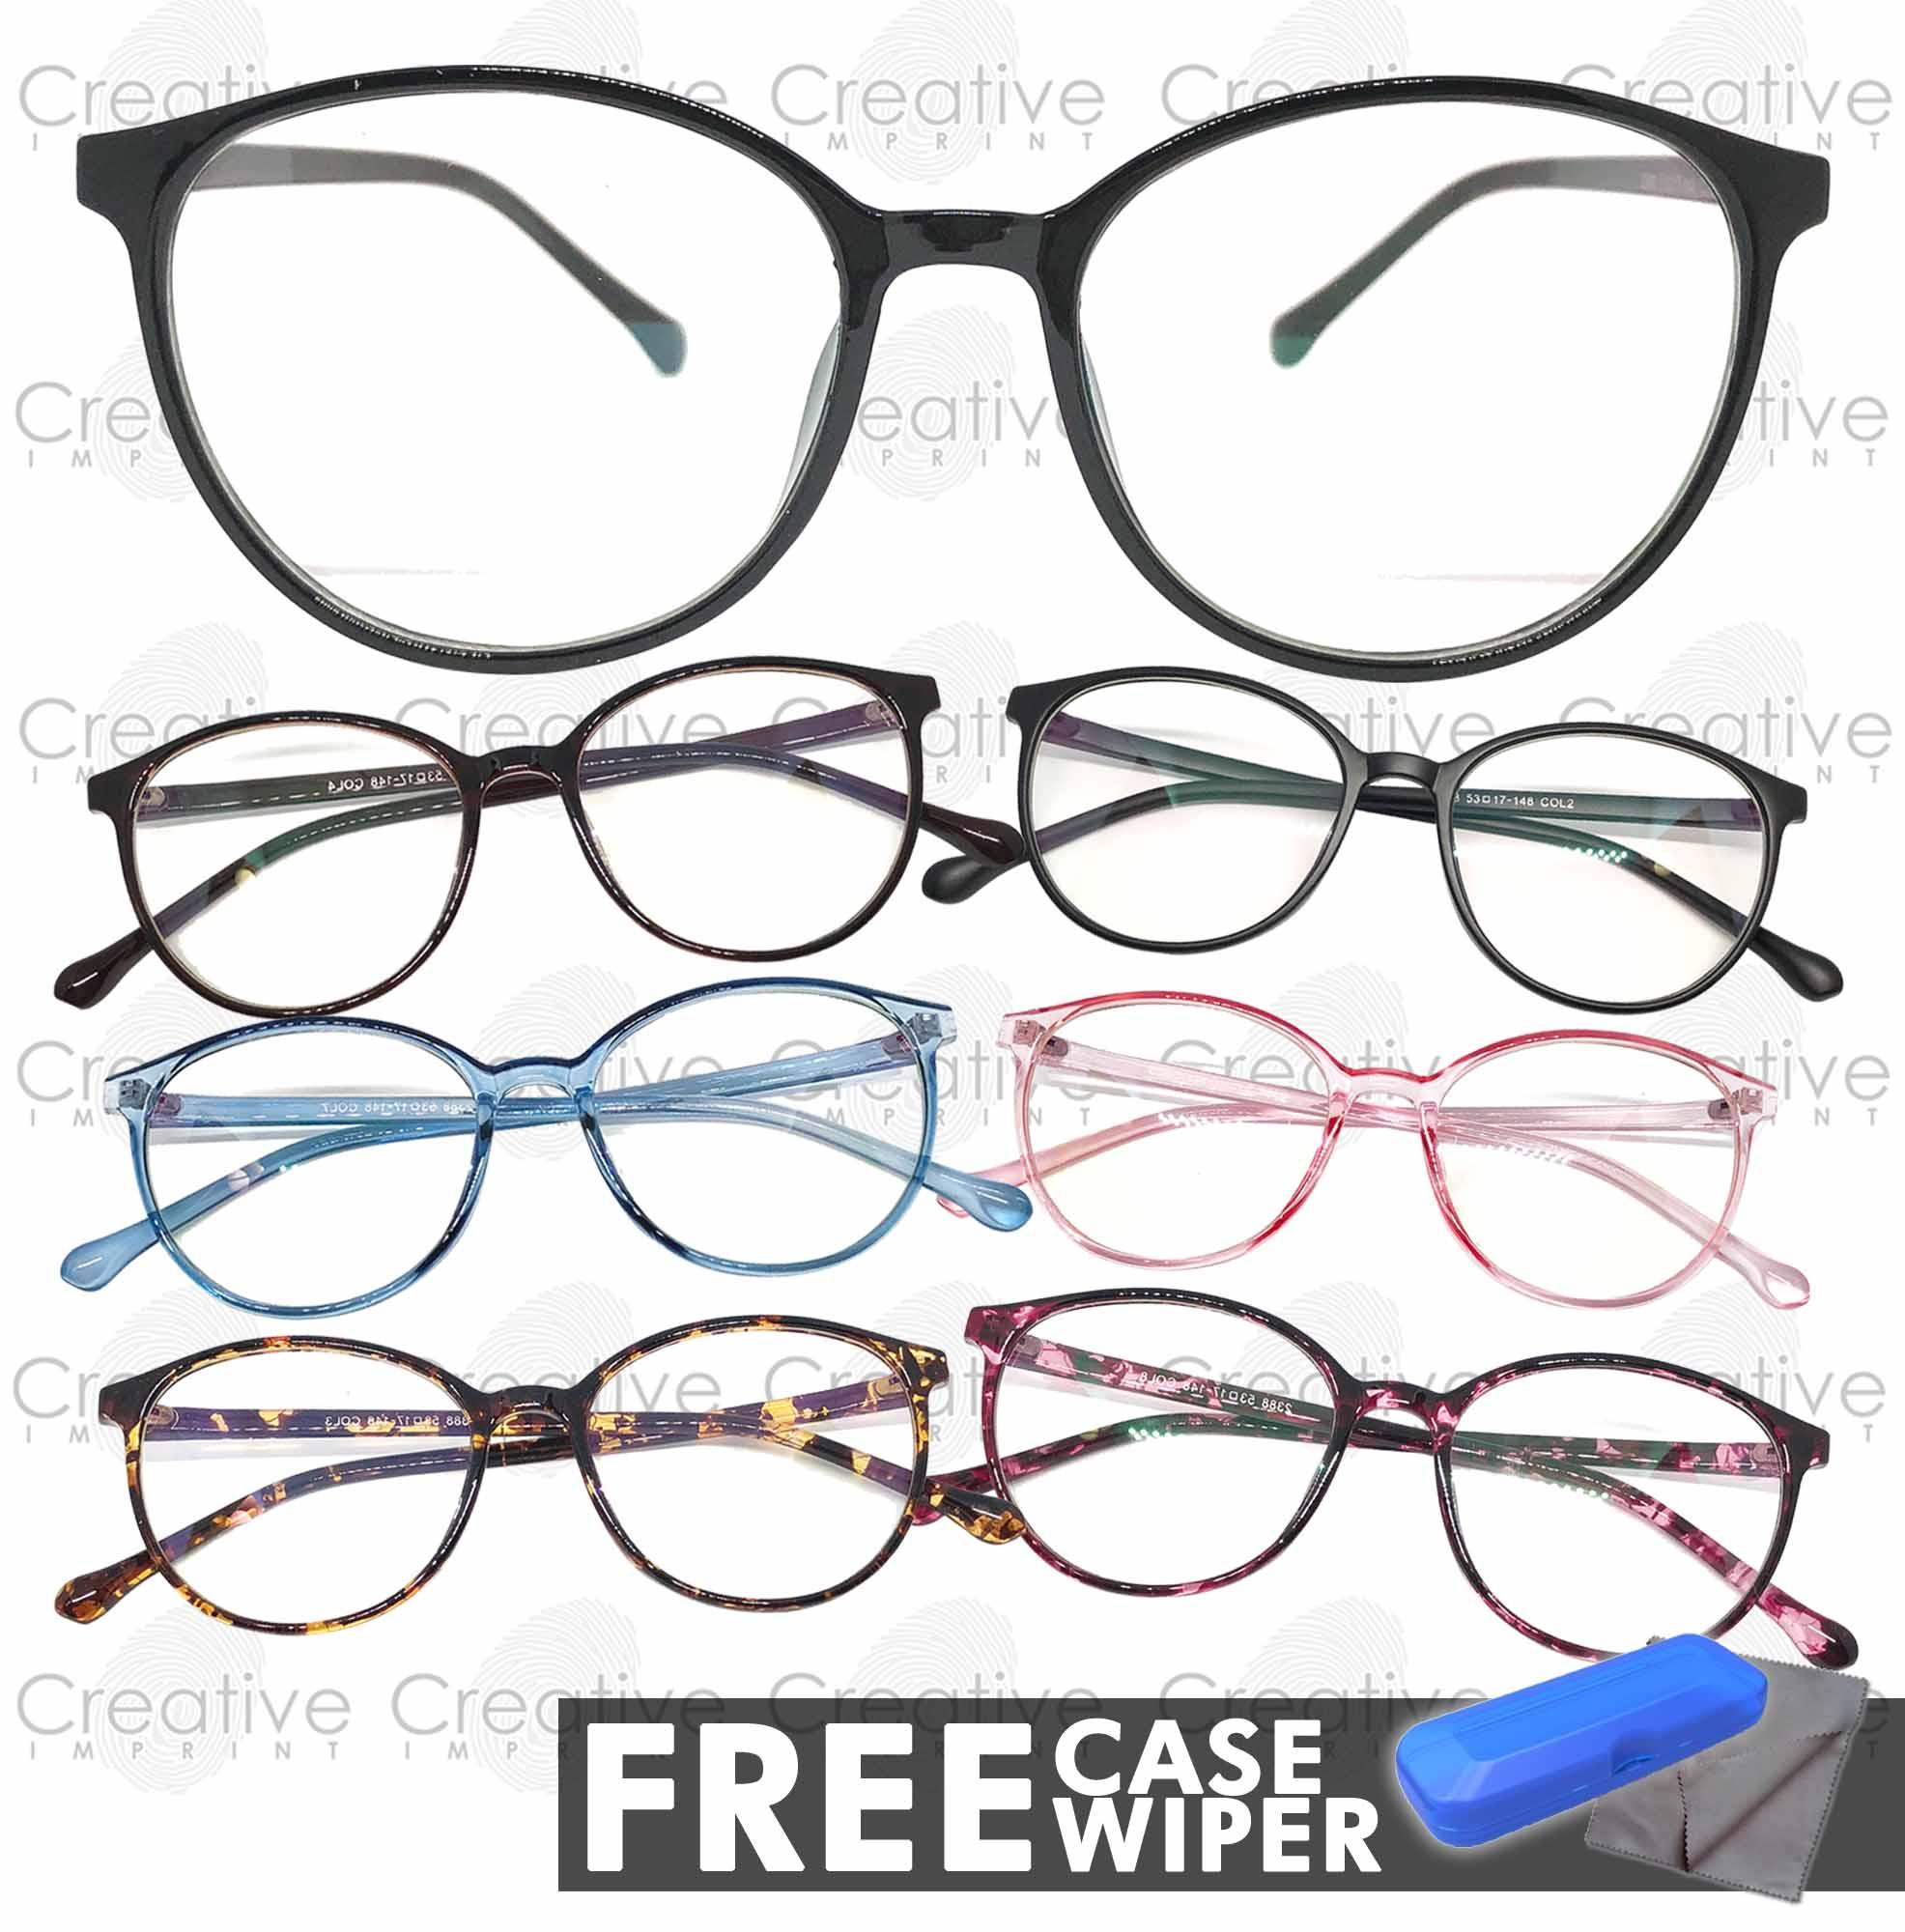 5d2026269d Creative Imprint Eyeglasses Anti-Radiation Lens Anti-Fatigue Anti-Blue  Light Flexible Computer